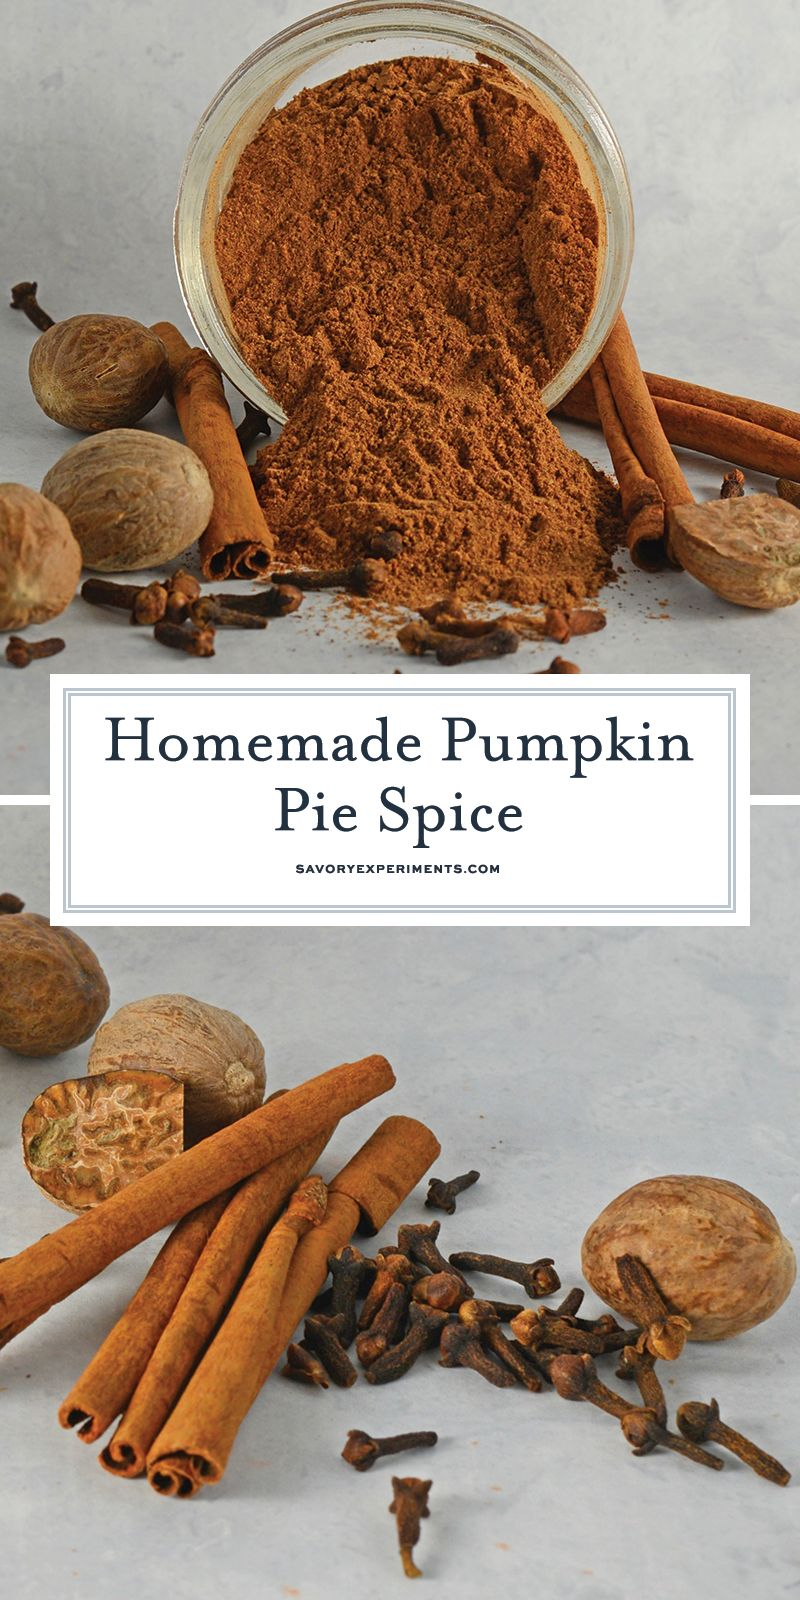 Homemade Pumpkin Pie Spice is a simple recipe made from